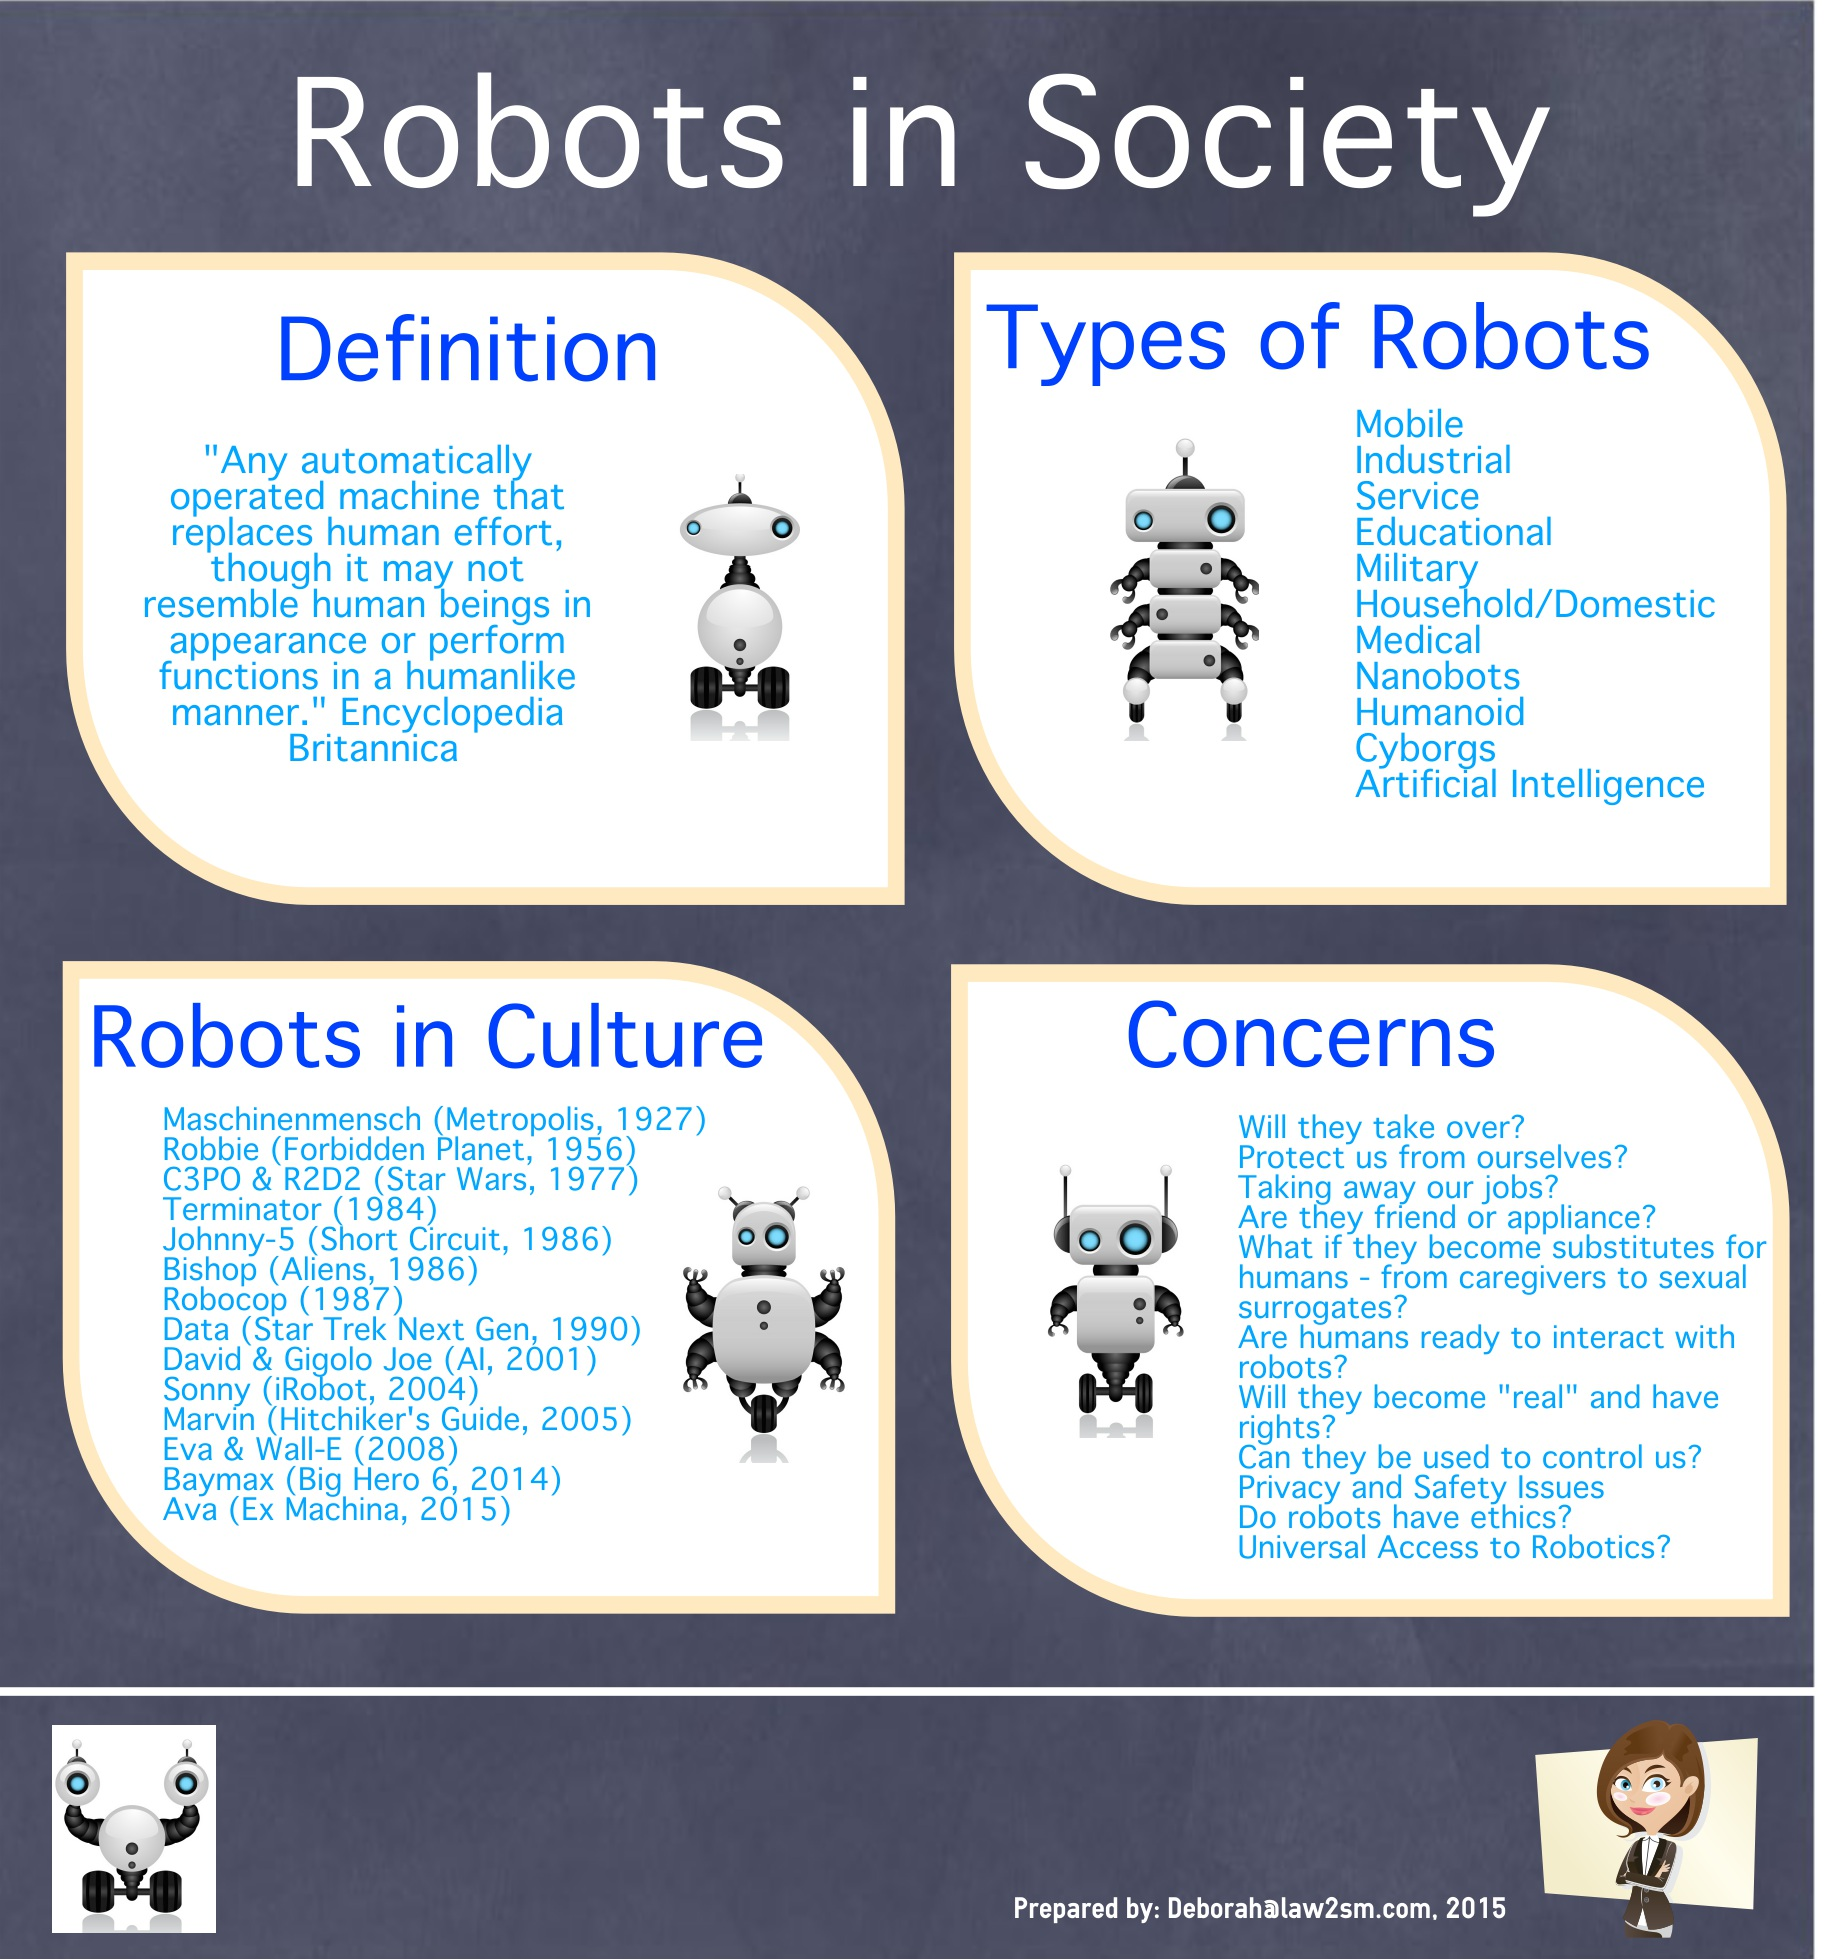 Robots In Society Infographic